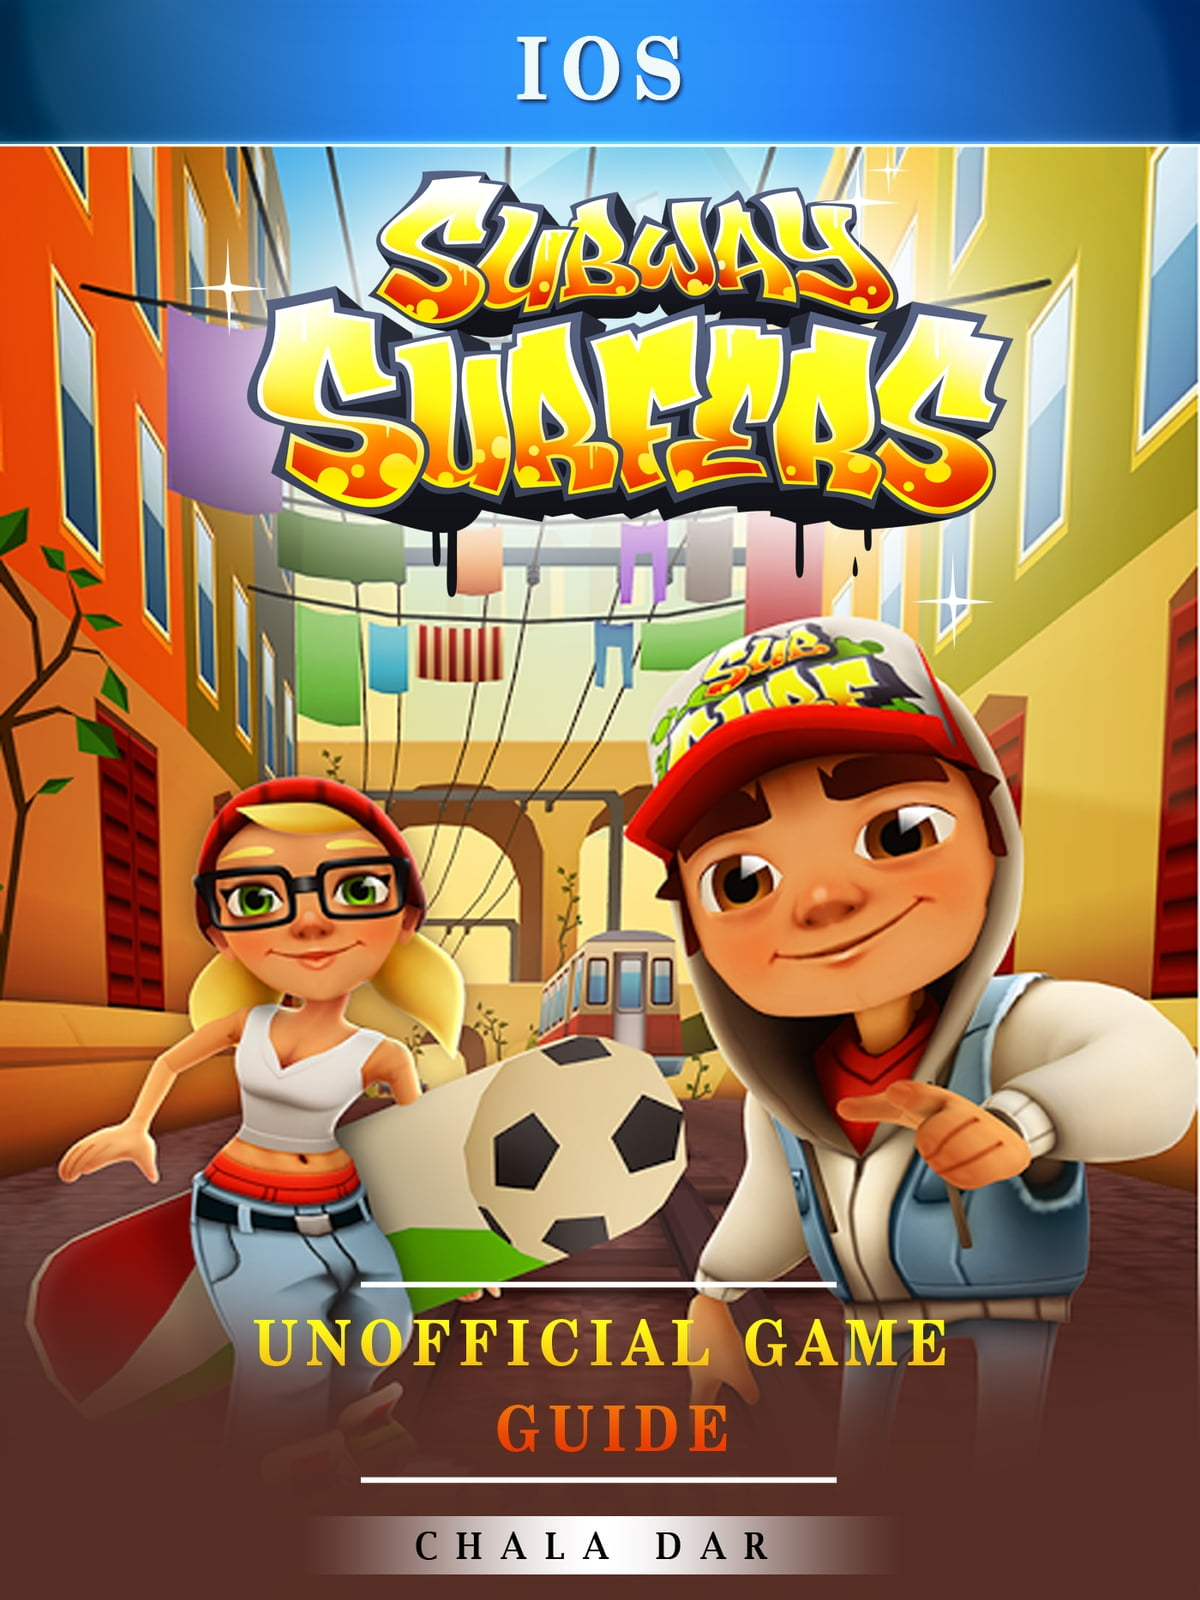 Subway Surfers Ios Unofficial Game Guide Ebook By Chala Dar